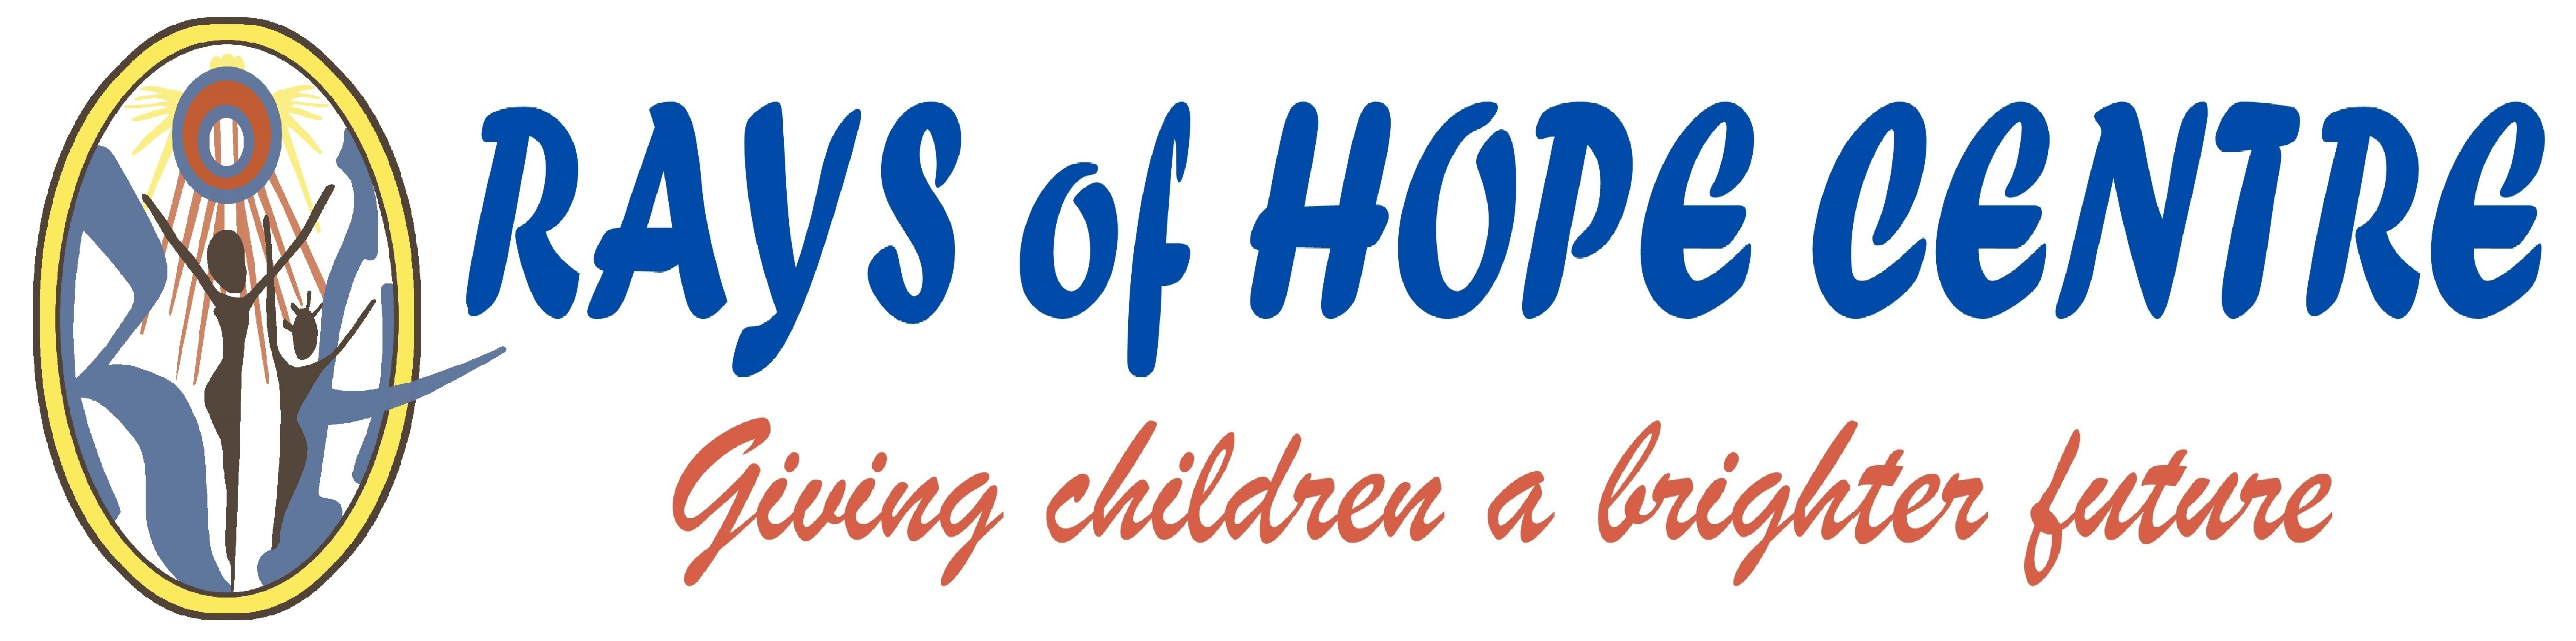 Rays of Hope Centre